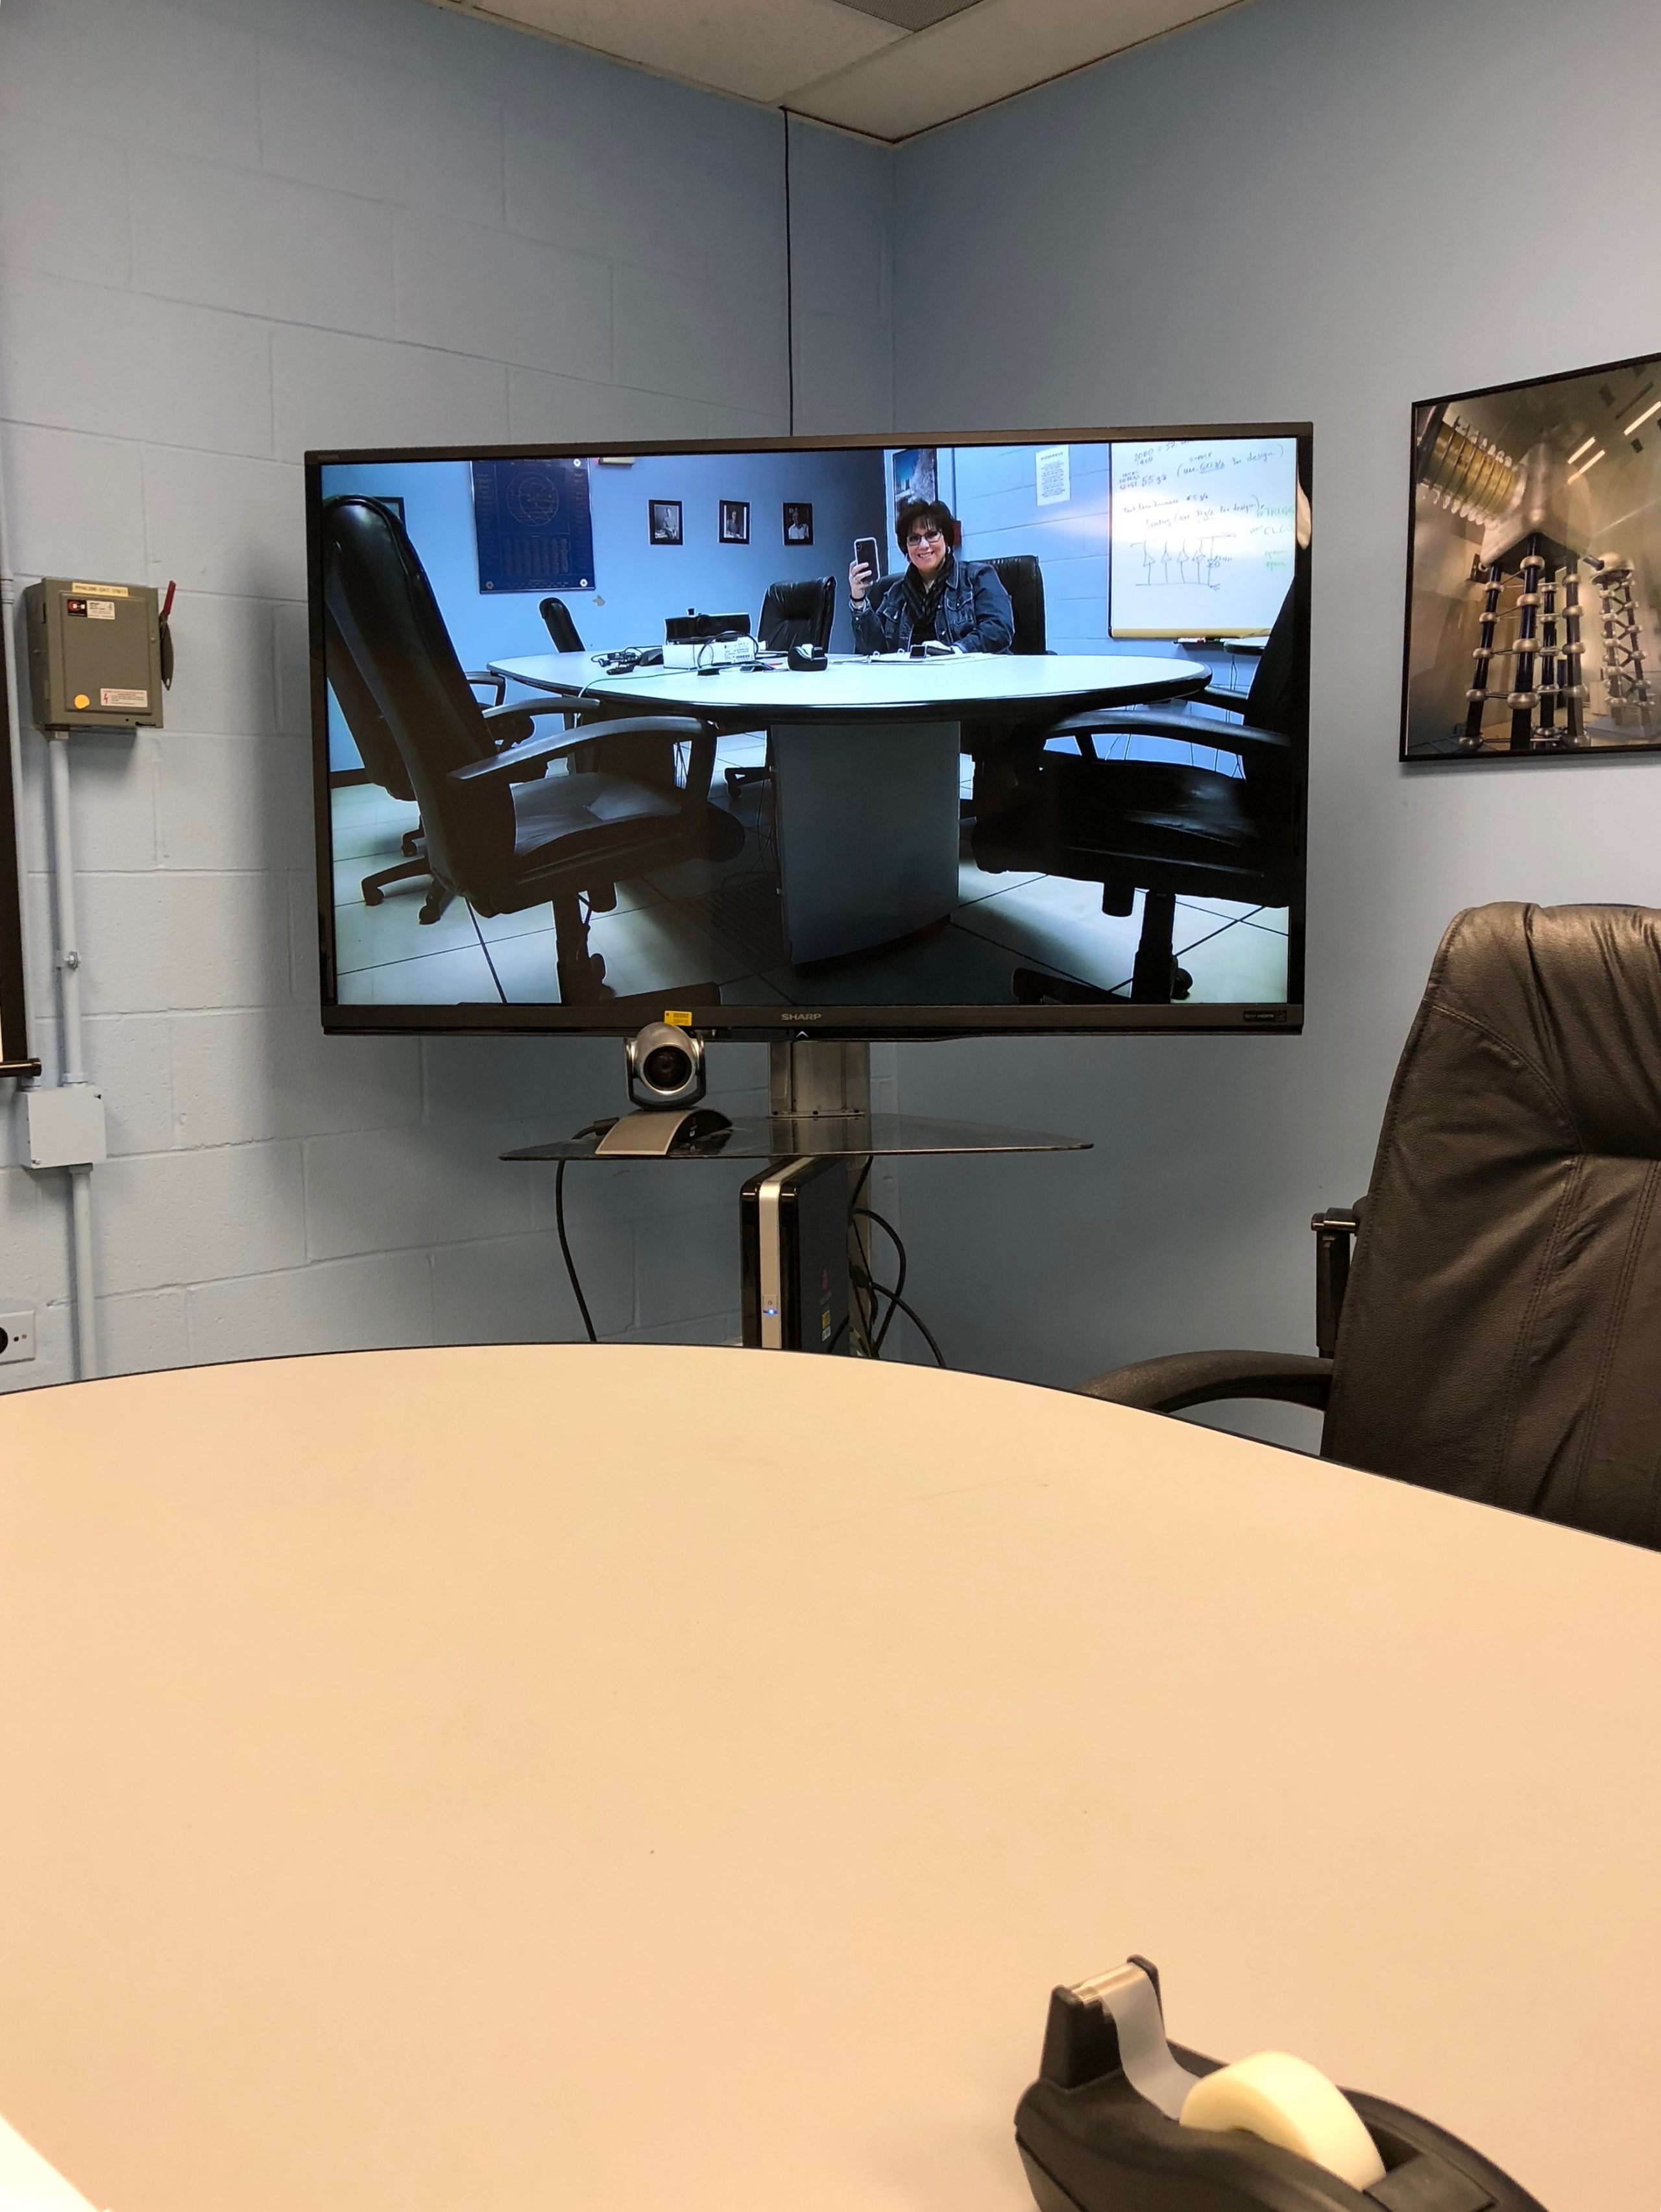 The Blue Room video conference room needed a reboot, so I, Leticia, walked over to Lab F to do so. Photo: Leticia Shaddix, people